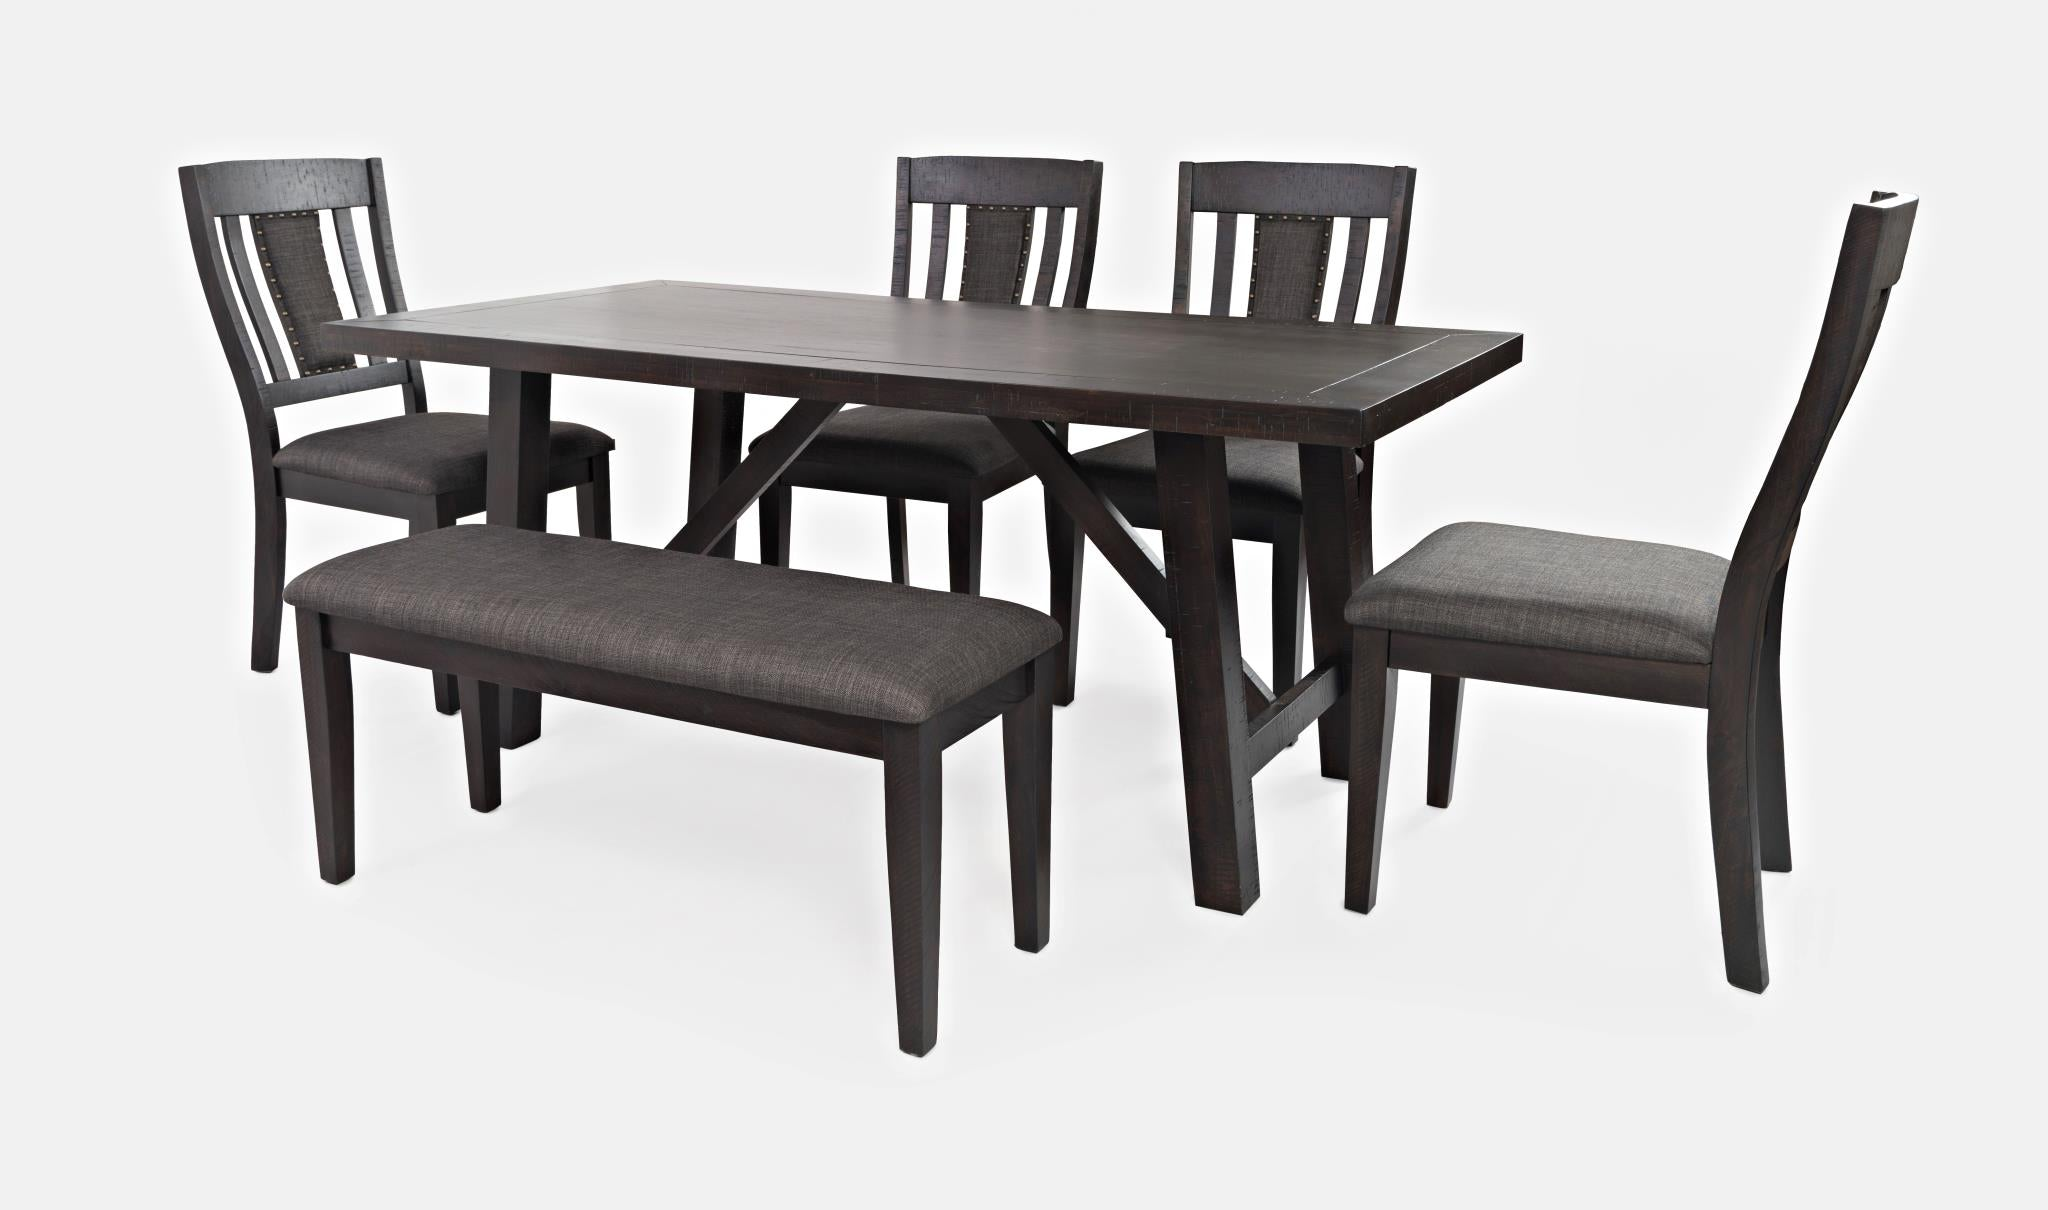 Summers Dining Set - Lifestyle Furniture